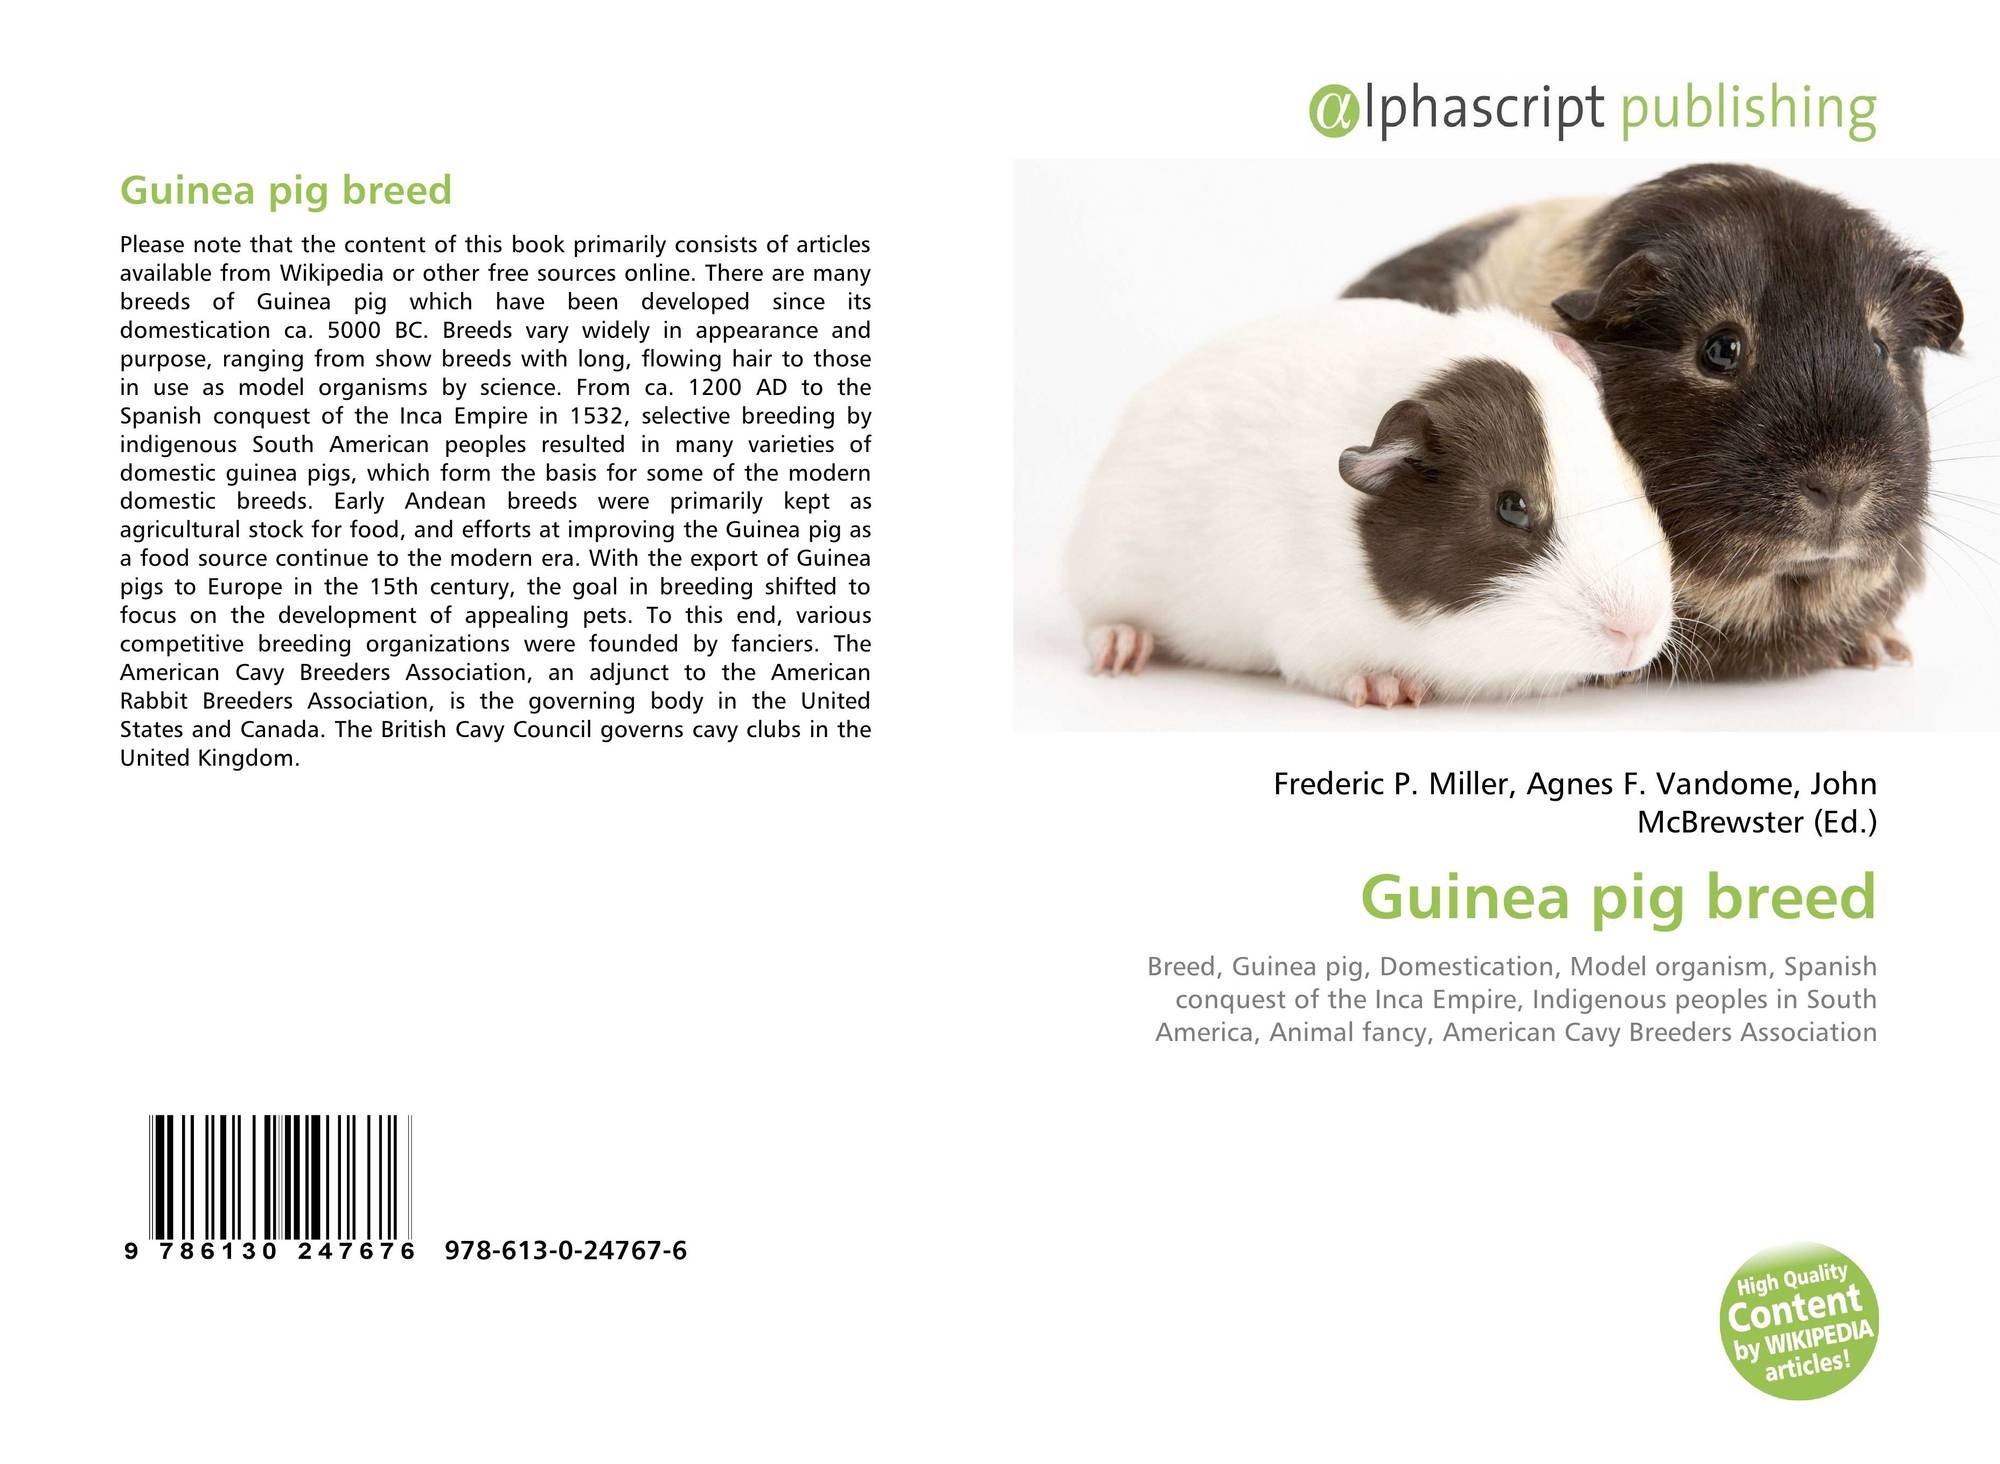 Guinea pig genetics worksheet answers pearson